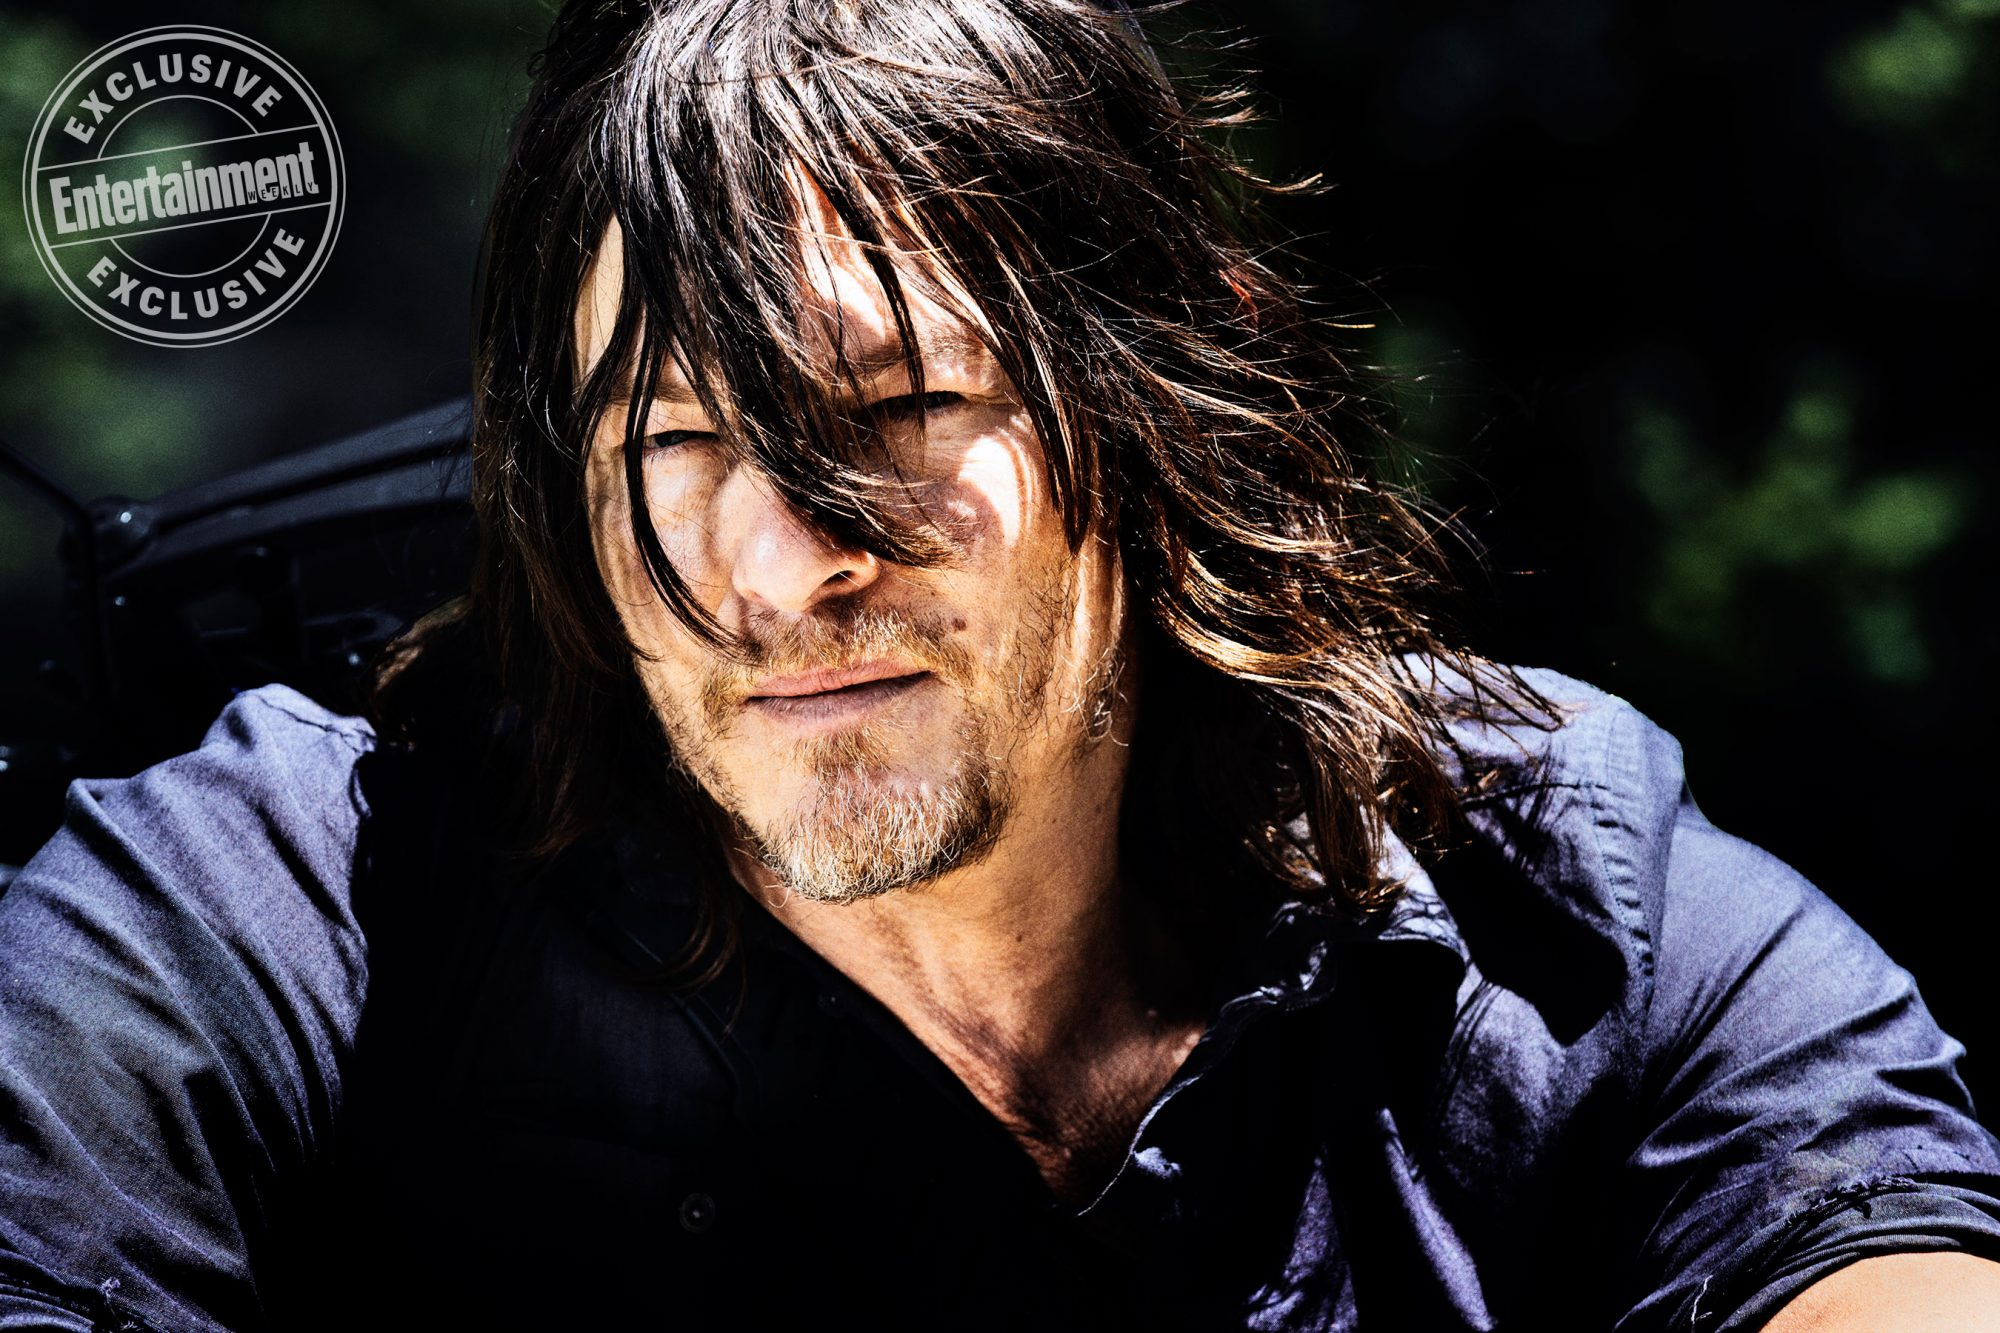 Norman-Reedus-as-Daryl-Dixon --The-Walking-Dead-_-Season-8,-Gallery---Photo-Credit-Alan-Clarke,-AMC